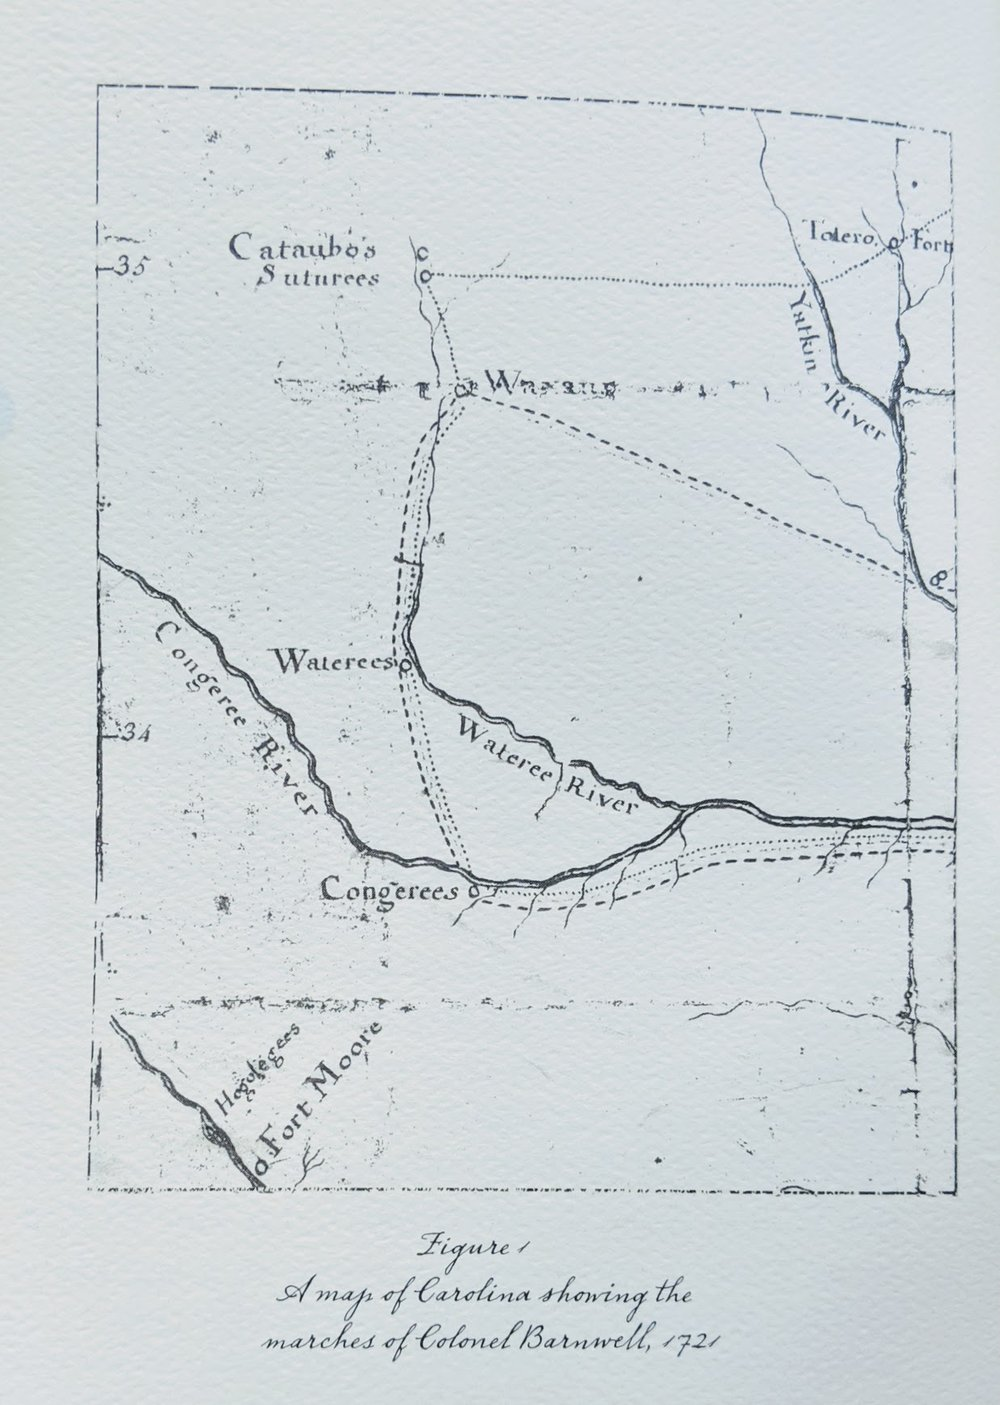 The First Map to… - …accurately represent the backcountry with any sort of detail was drawn by a trader and soldier of fortune, John Barnwell (Figure 1, Left). This map is of particular interest not only because it is the first map to show fairly accurate details in the backcountry, but also because John Lawson may have had an early version of it during his travels. Barnwell and the other principles involved with Lawson and the map were all military mercenaries and active Indian traders. It is quite likely they would have had a sketch map with the location of their trade partners. It is equally reasonable to presume that, if they had a map, they would have shared it with the young man they sent into the wilds.